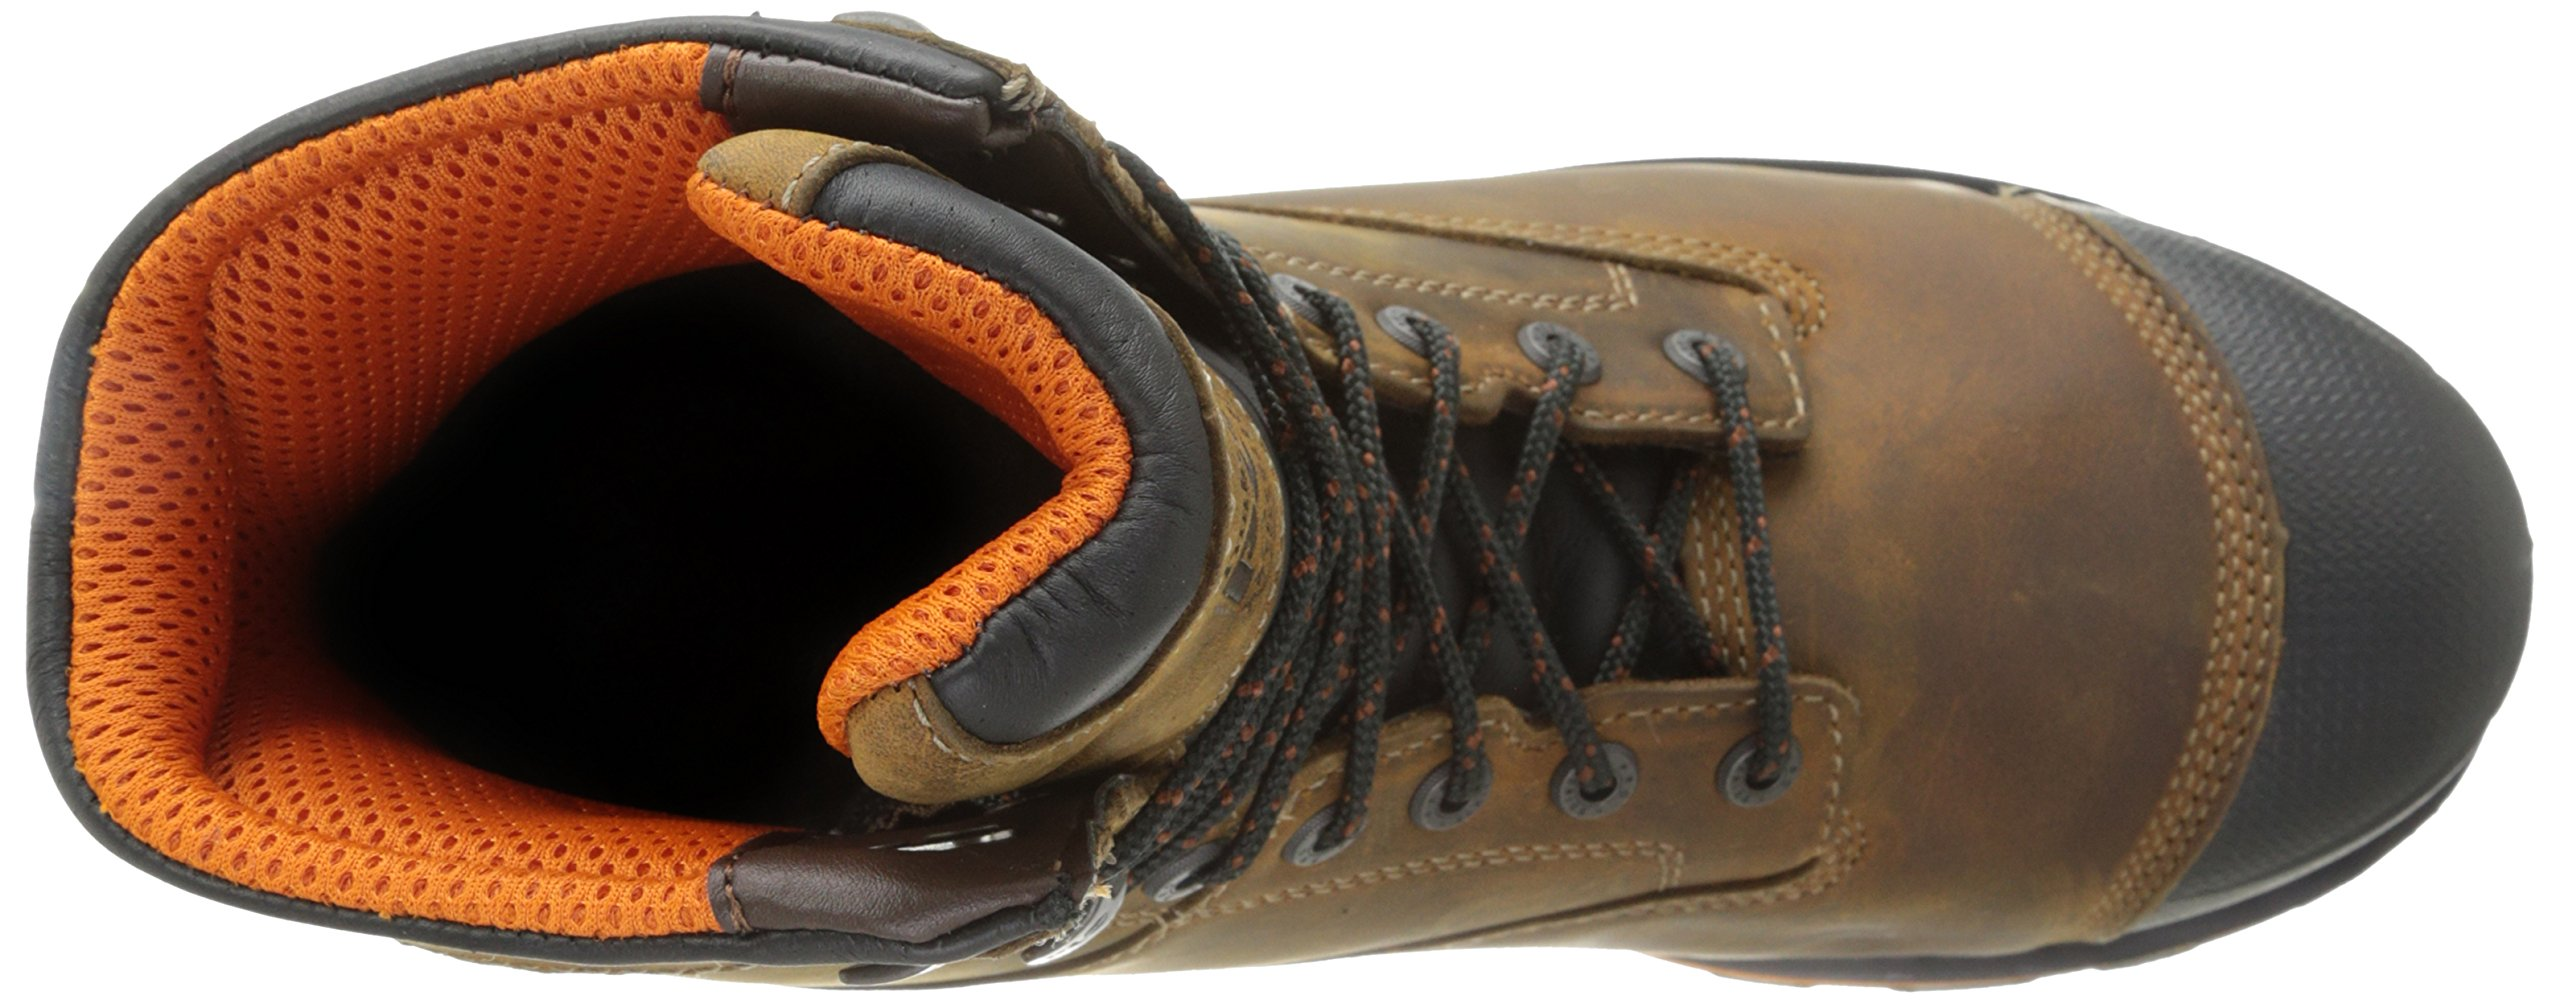 Timberland PRO Men's 8 Inch Boondock Composite Toe Waterproof Industrial Work Boot,Brown Oiled Distressed Leather,7.5 W US by Timberland PRO (Image #8)